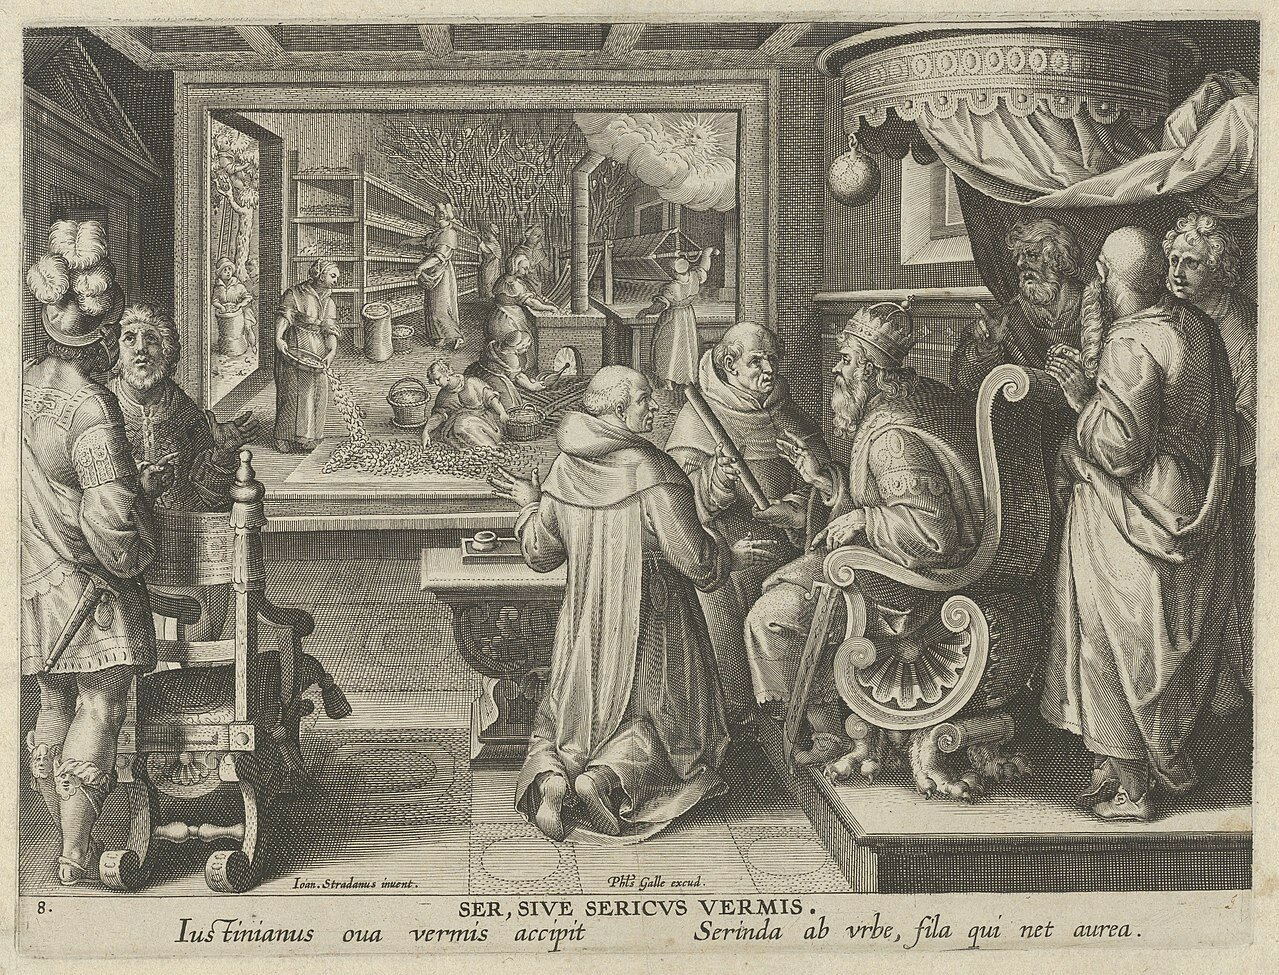 1280px-New_Inventions_of_Modern_Times_-Nova_Reperta-,_The_Production_of_Silk,_plate_8_MET_DP841127.jpg